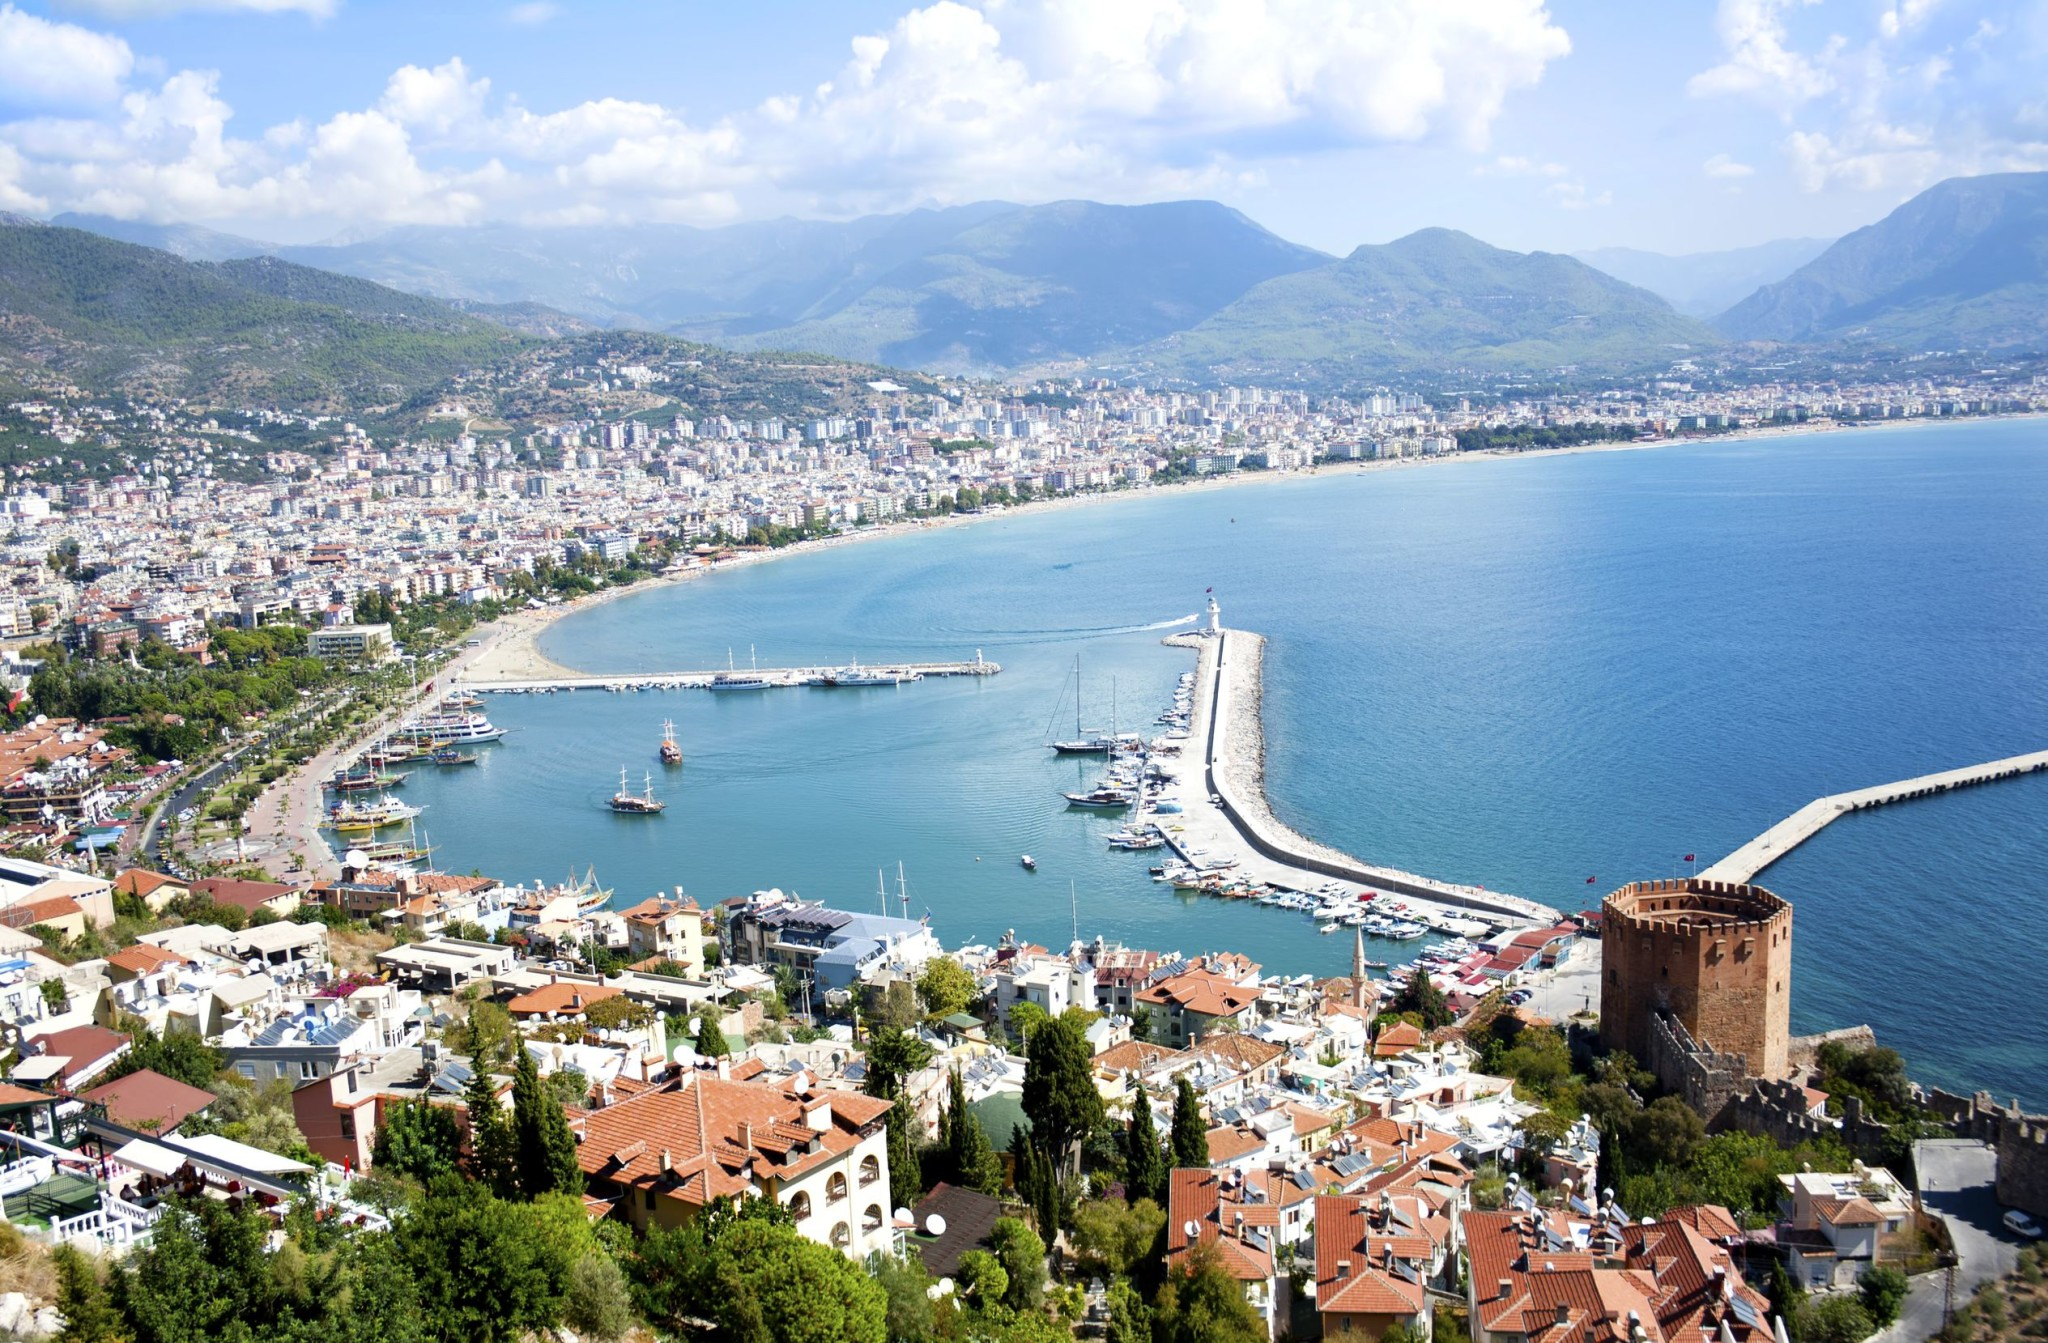 Antalya coastline, Turkey : Layover Guide Antalya